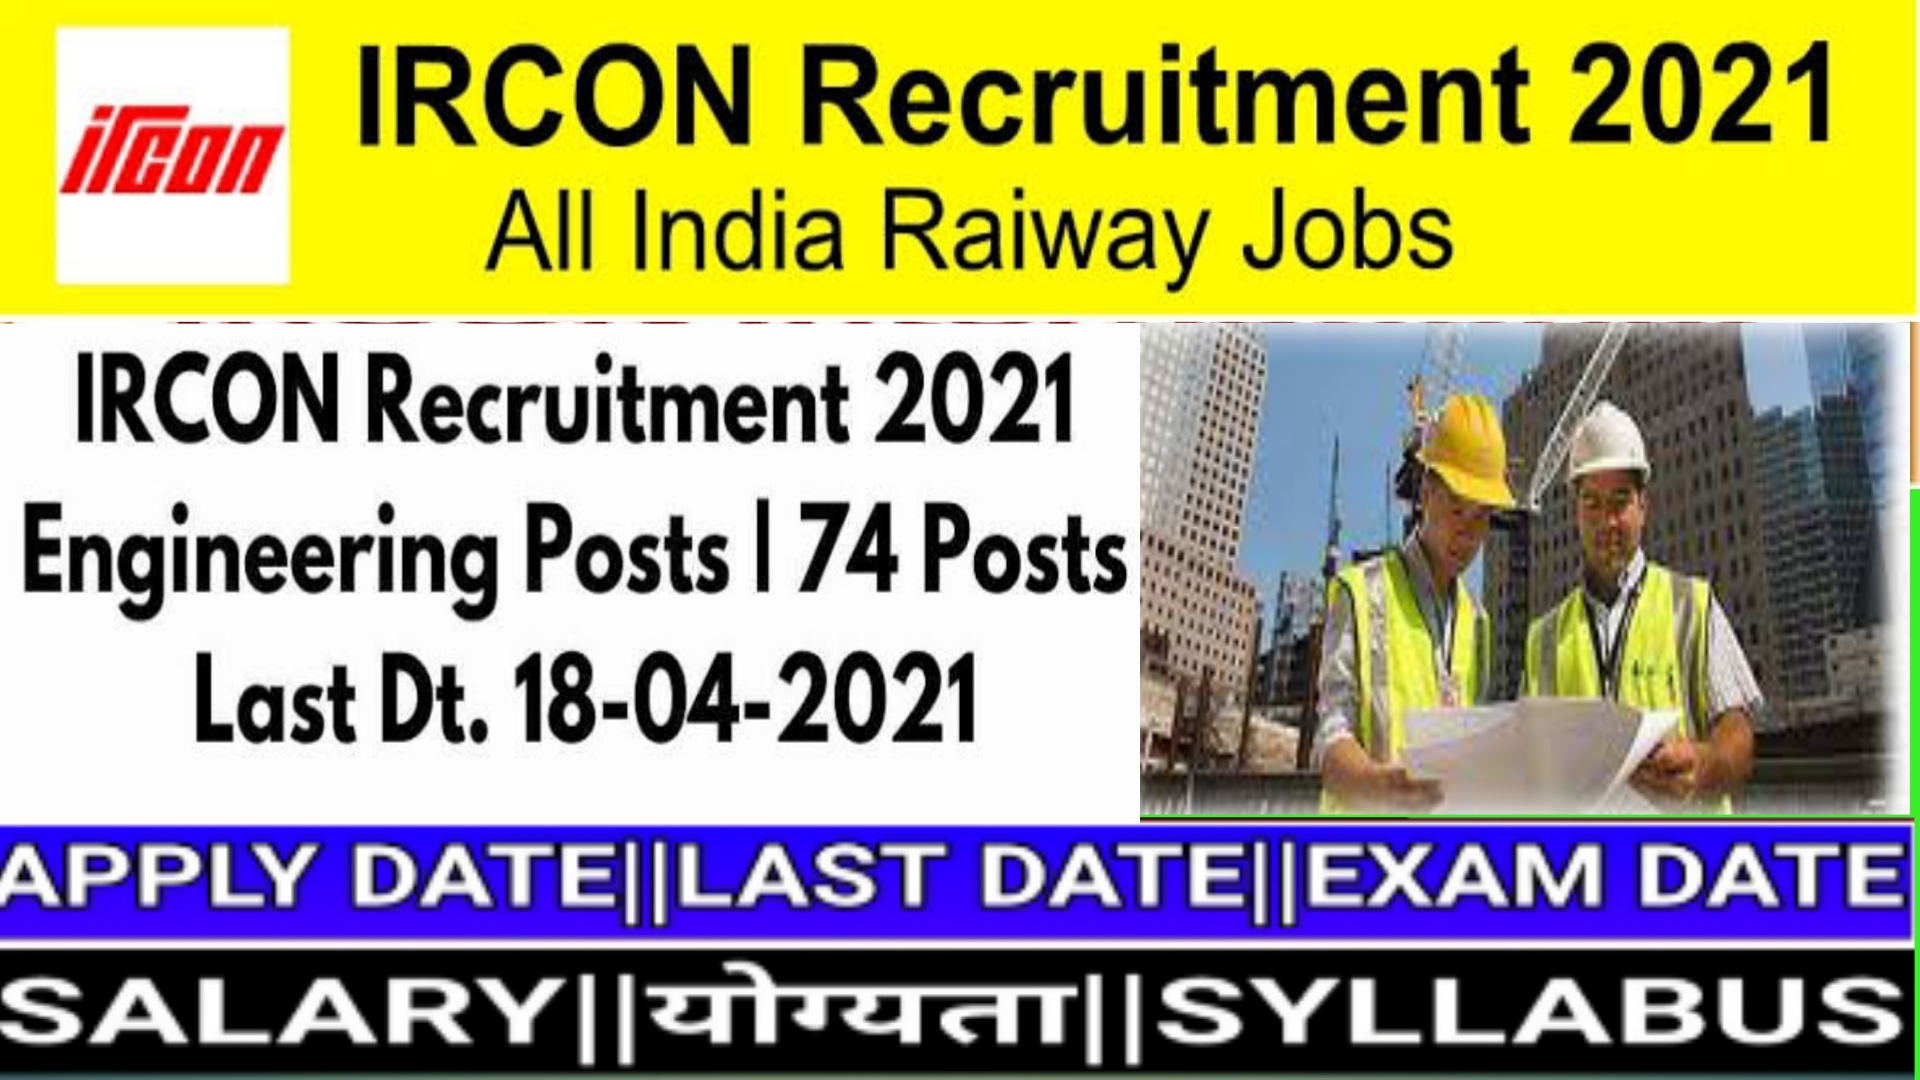 IRCON Recruitment 2021: Apply Online For 74 Work Engineer Posts